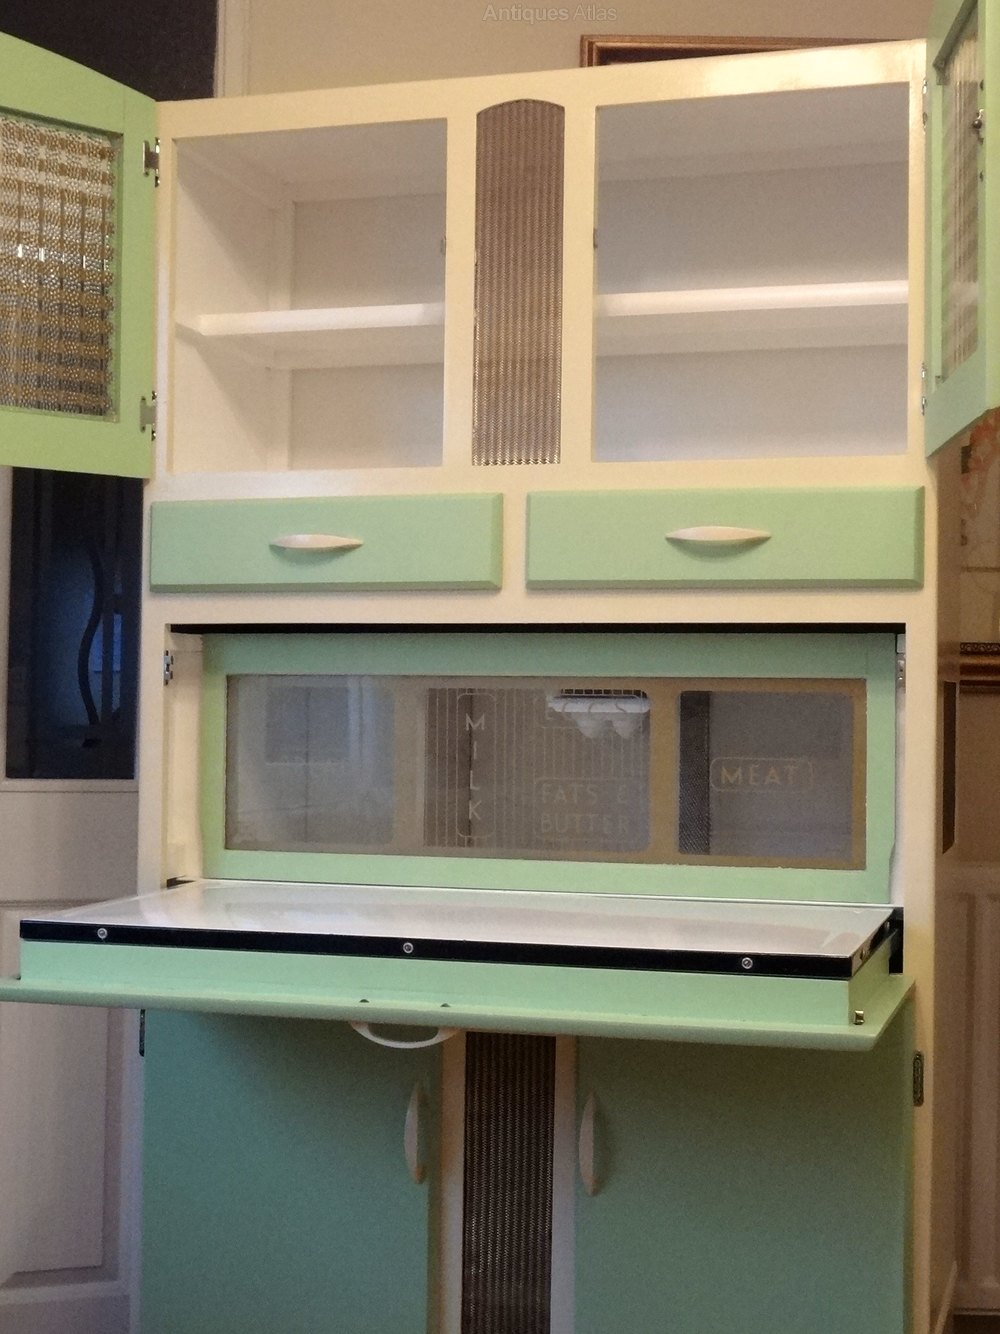 free standing kitchen larder cupboards embroidered towels antiques atlas - mid century retro cabinet